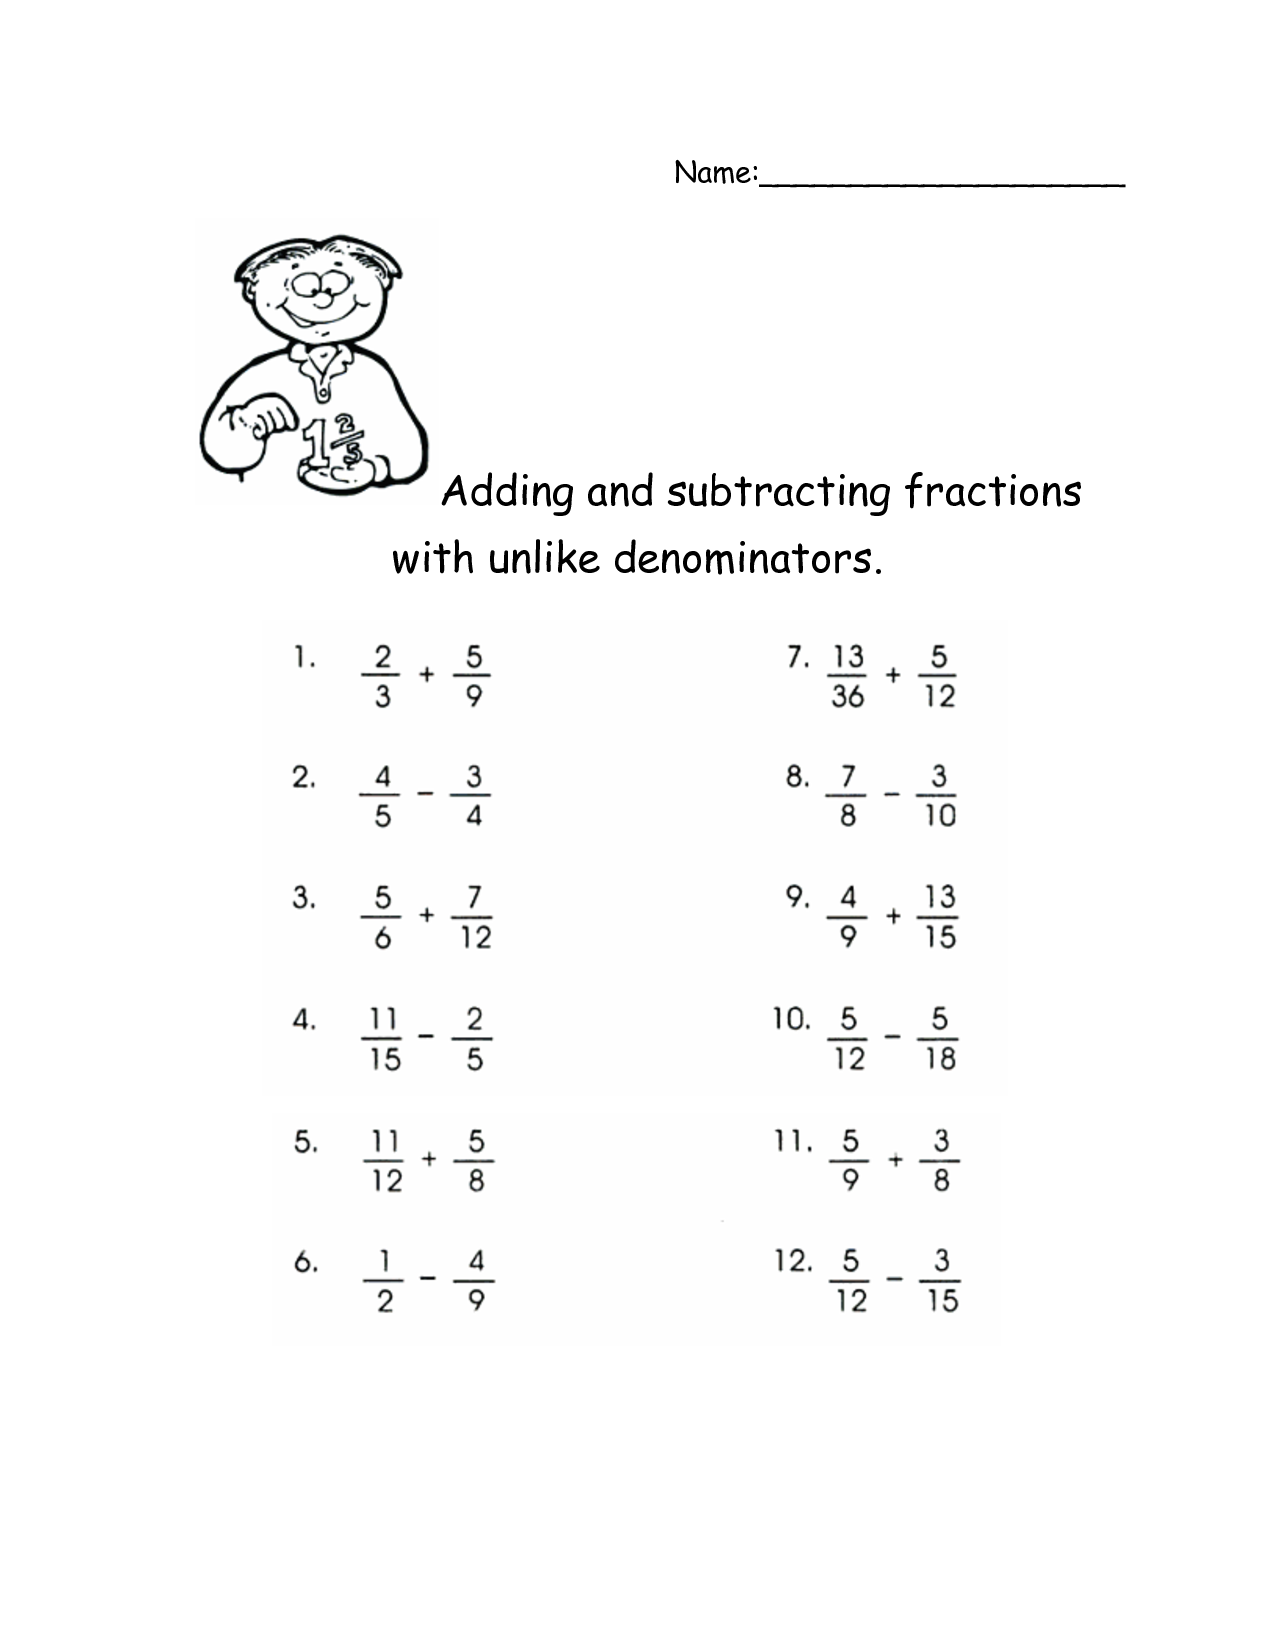 Subtract fractions homework help – Worksheets for Adding and Subtracting Fractions